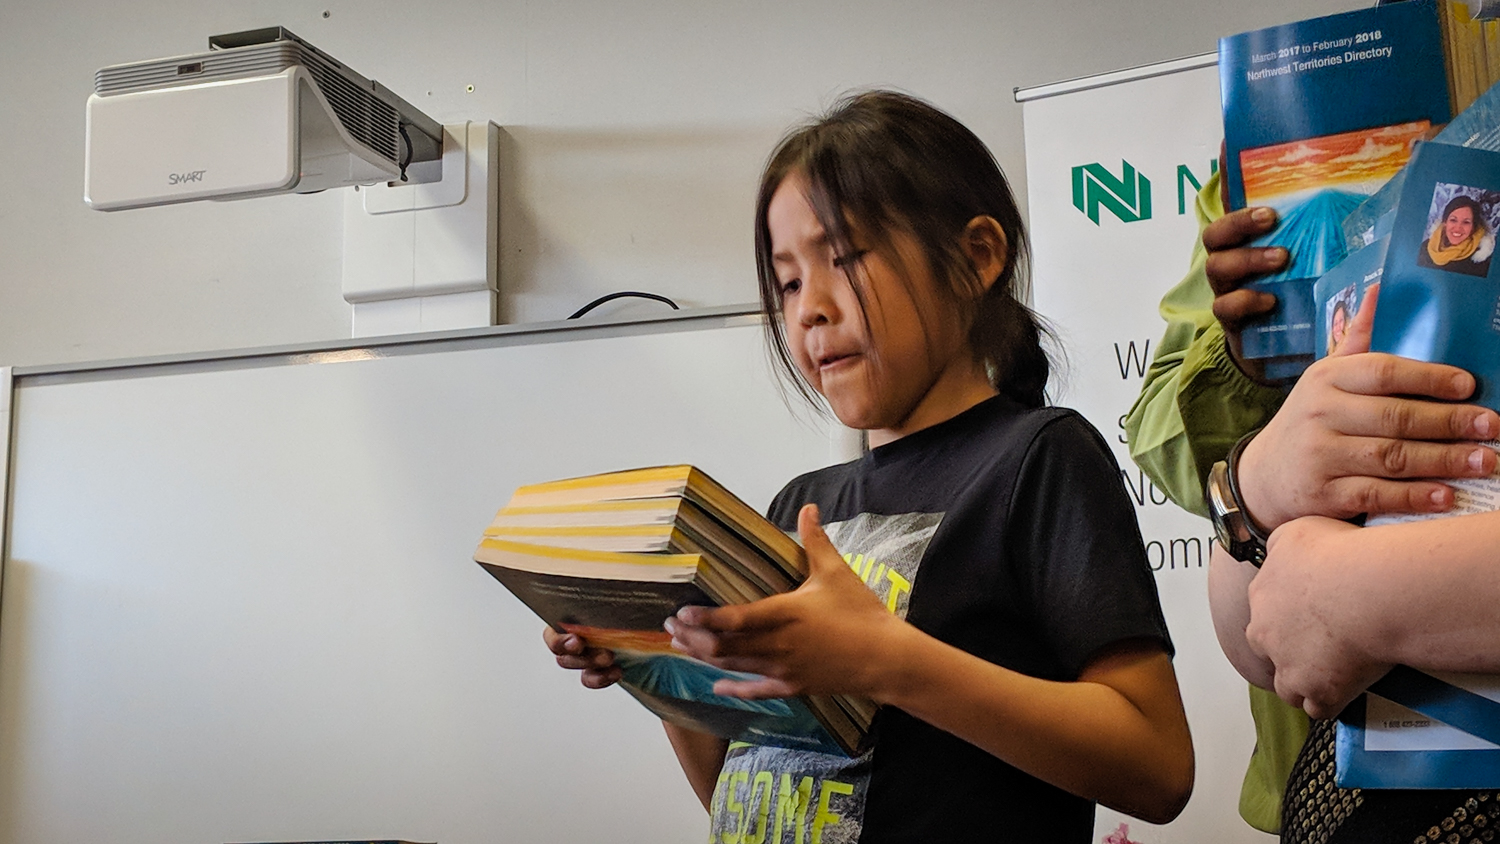 A Mildred Hall School student studies a collection of Northwestel telephone directories at a photo call in May 2018